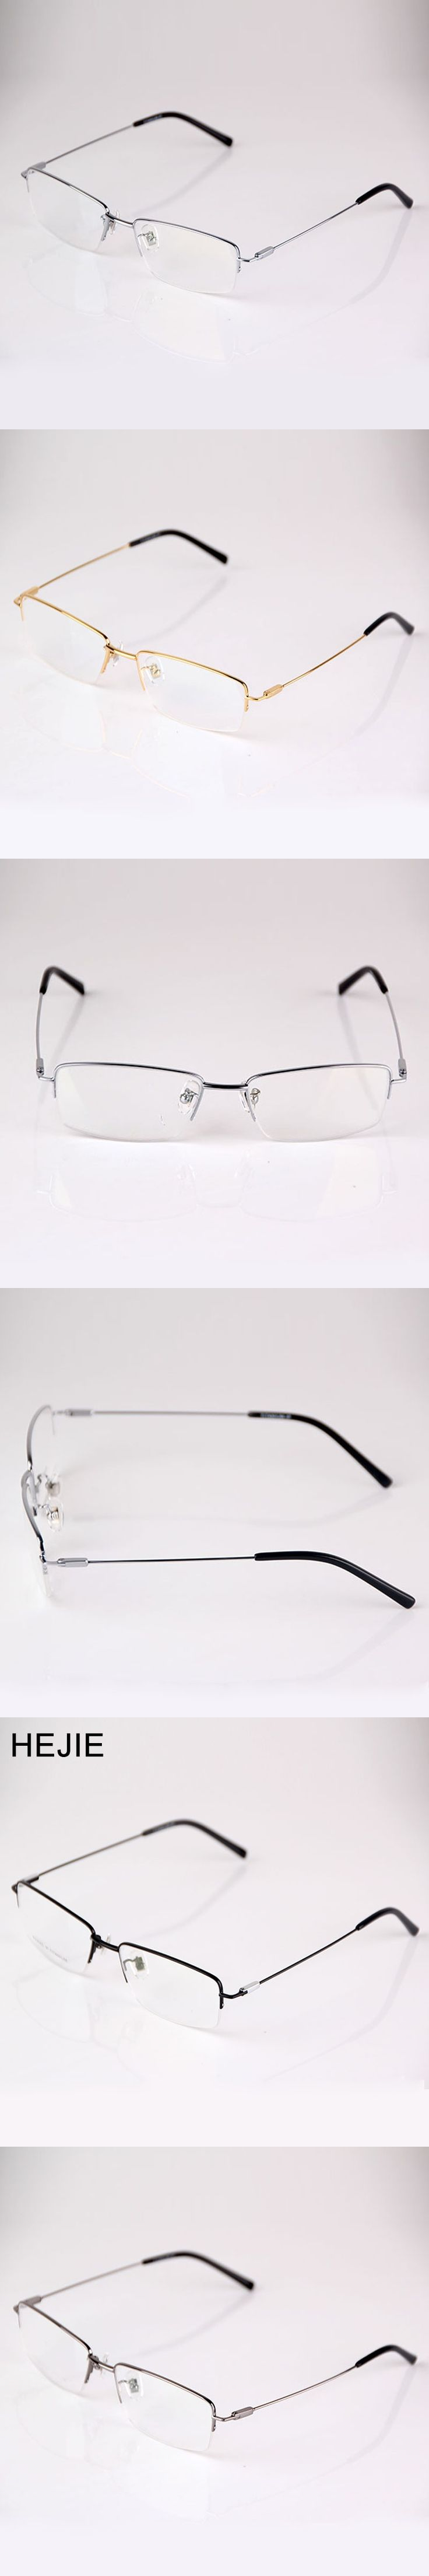 HEJIE Grade Men Pure Titanium Eyeglasses Frames Brand Half Rim Clear Lens Optical Glasses Frames For Male Size 54-17-140mm Y9065